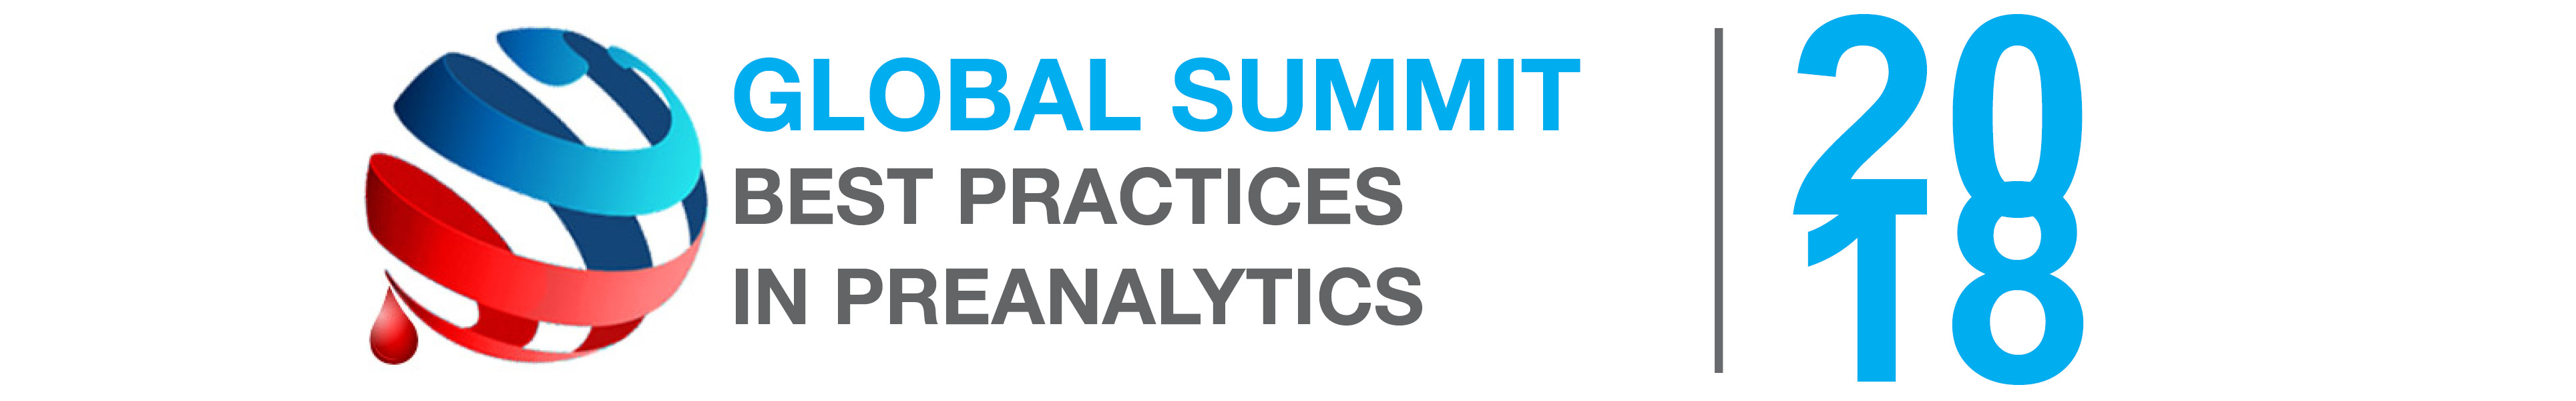 Global Summit on Best Practices in Preanalytics